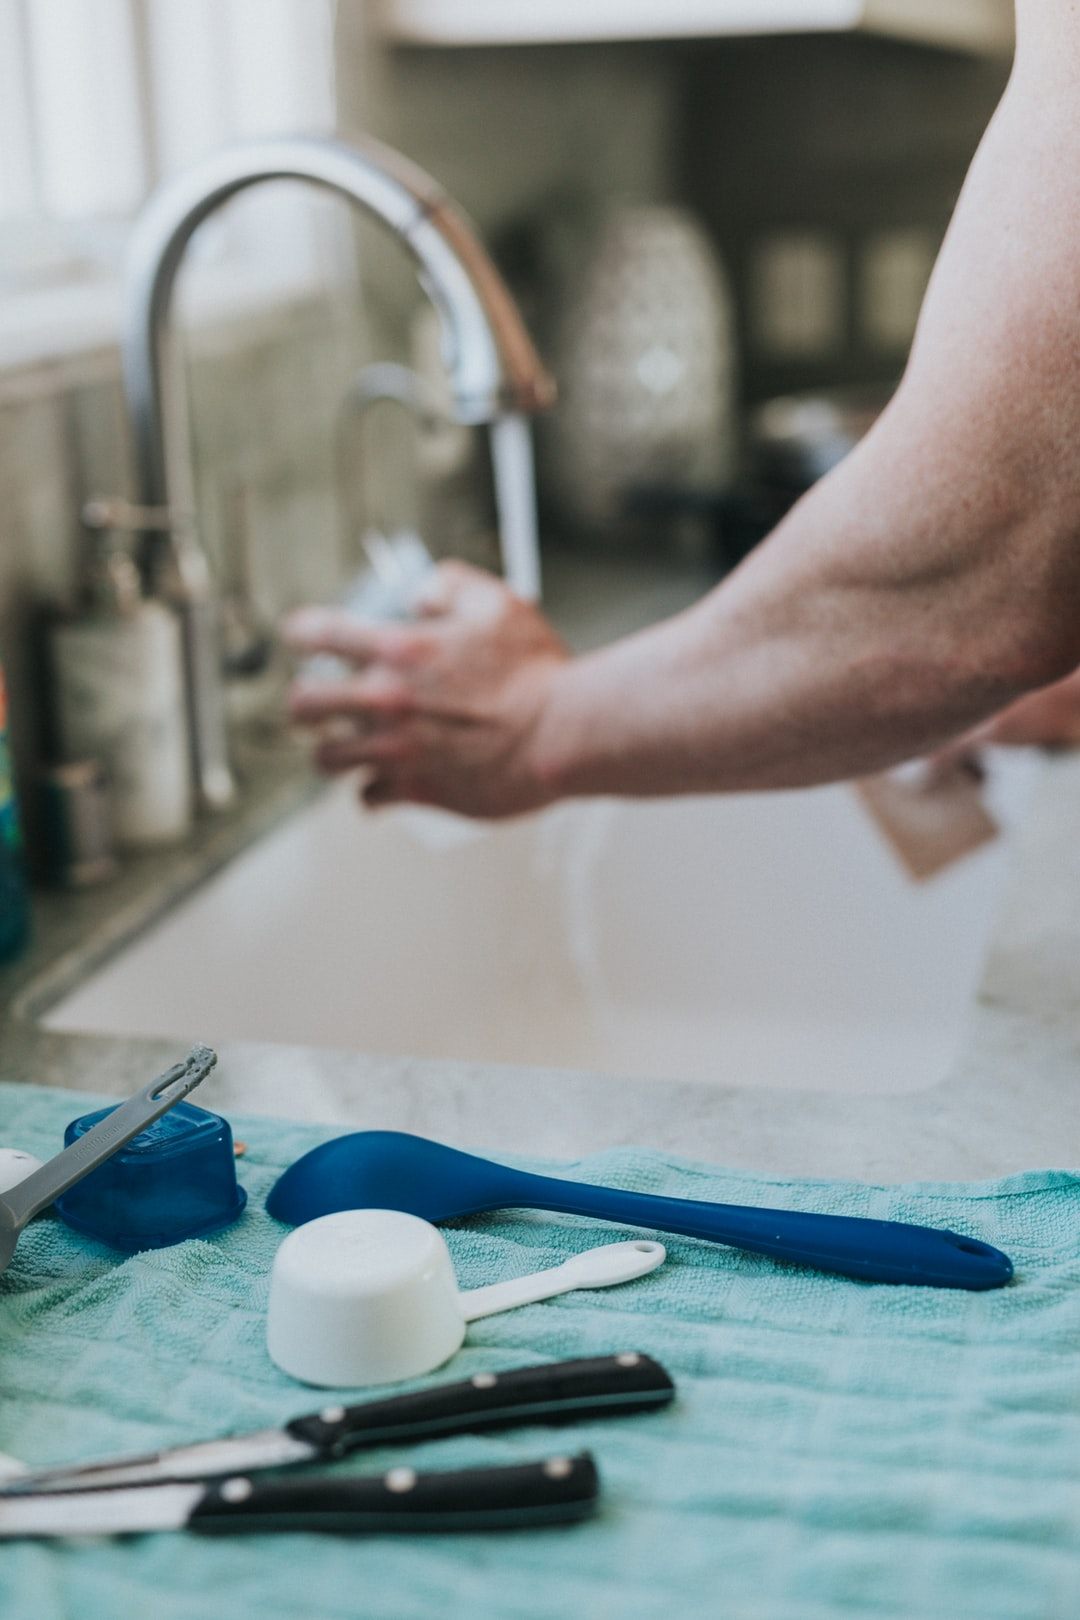 5 Pointers for Finding and Hiring a Good Brisbane Plumber